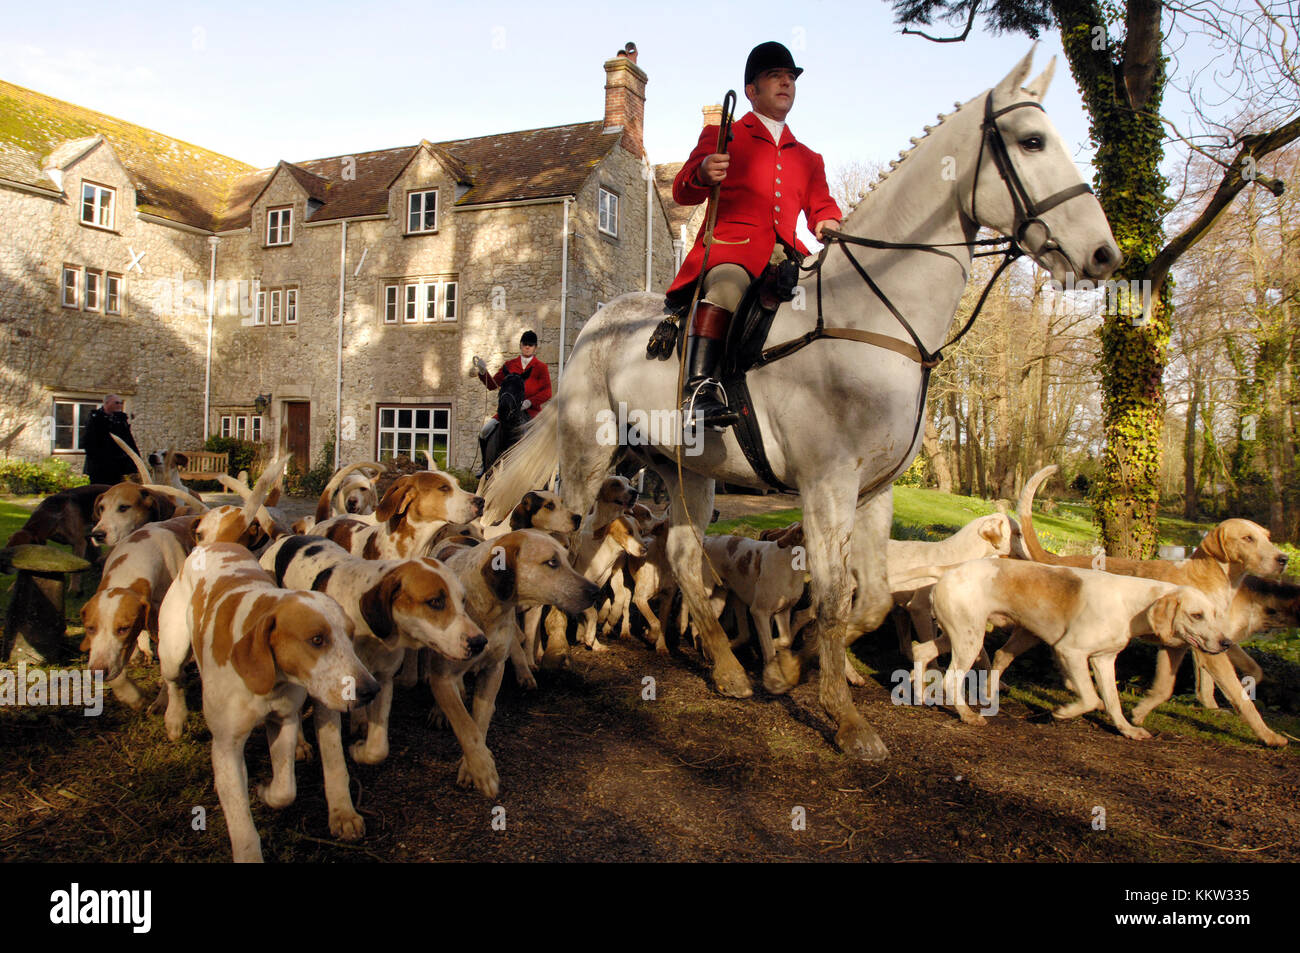 A huntsman dressed in a red jacket surrounded by fox hounds at a meeting of the traditional hunt with a country - Stock Image